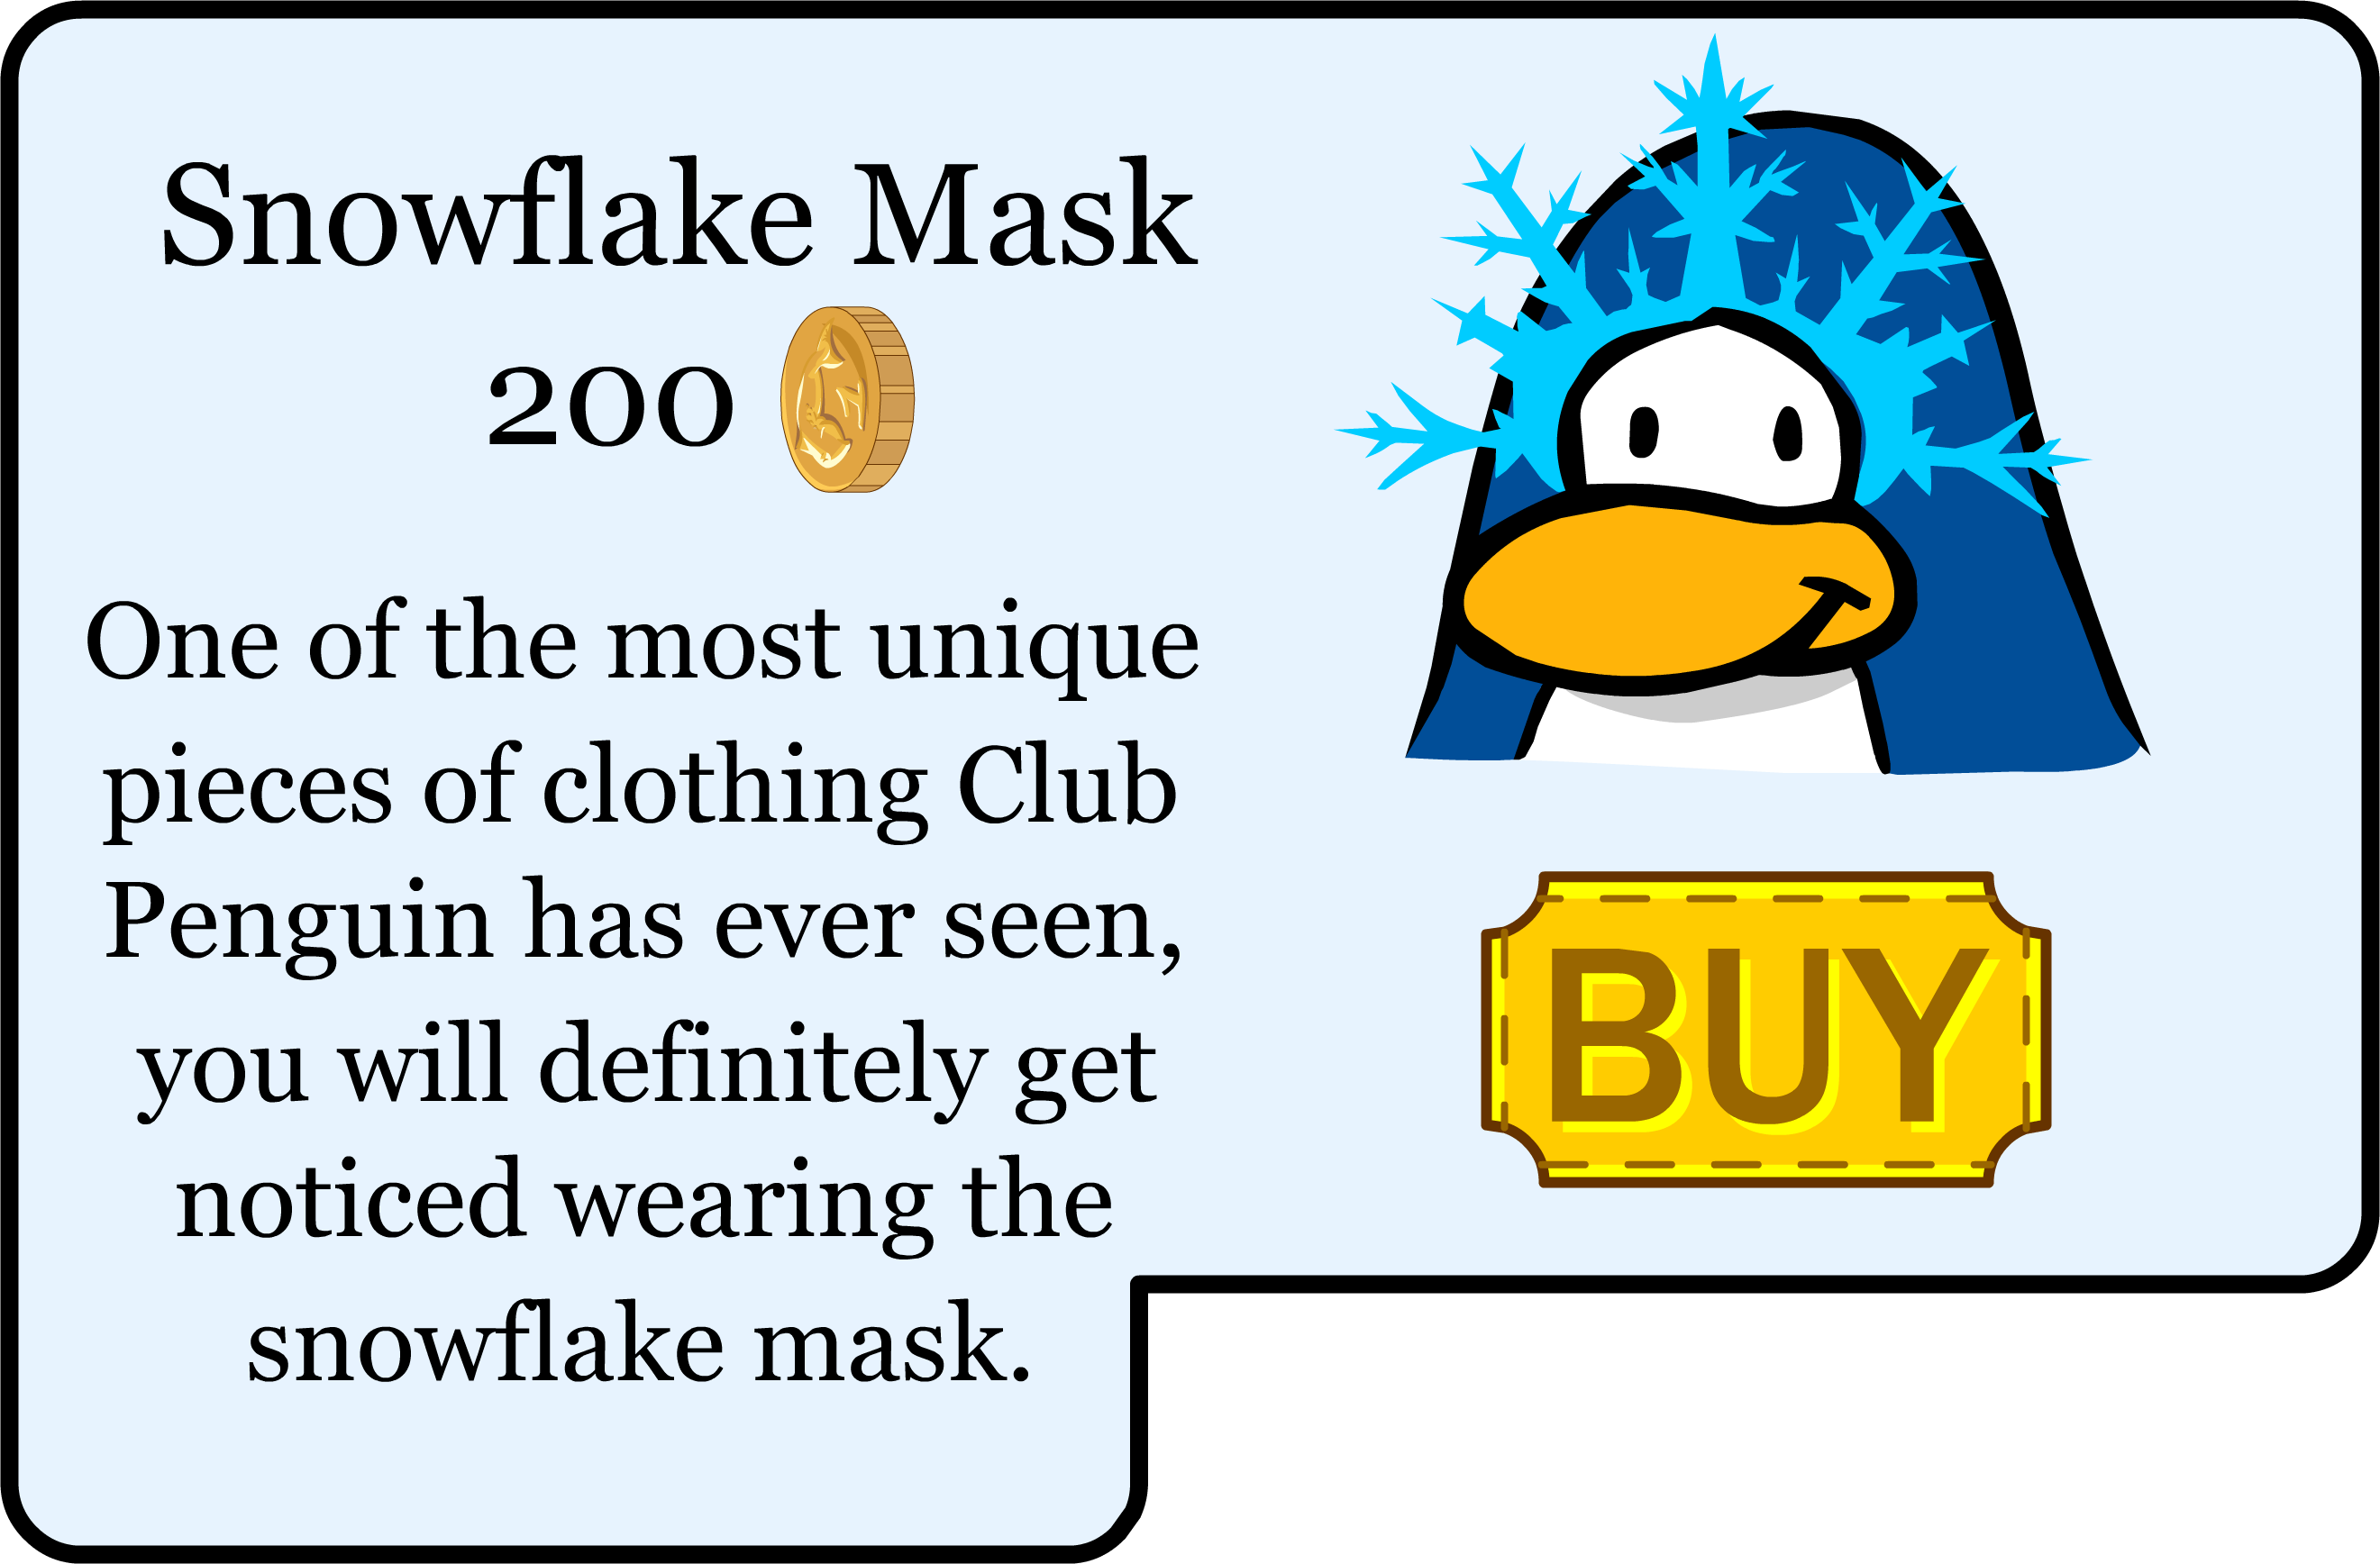 File:Snowflake Mask Catalog.png